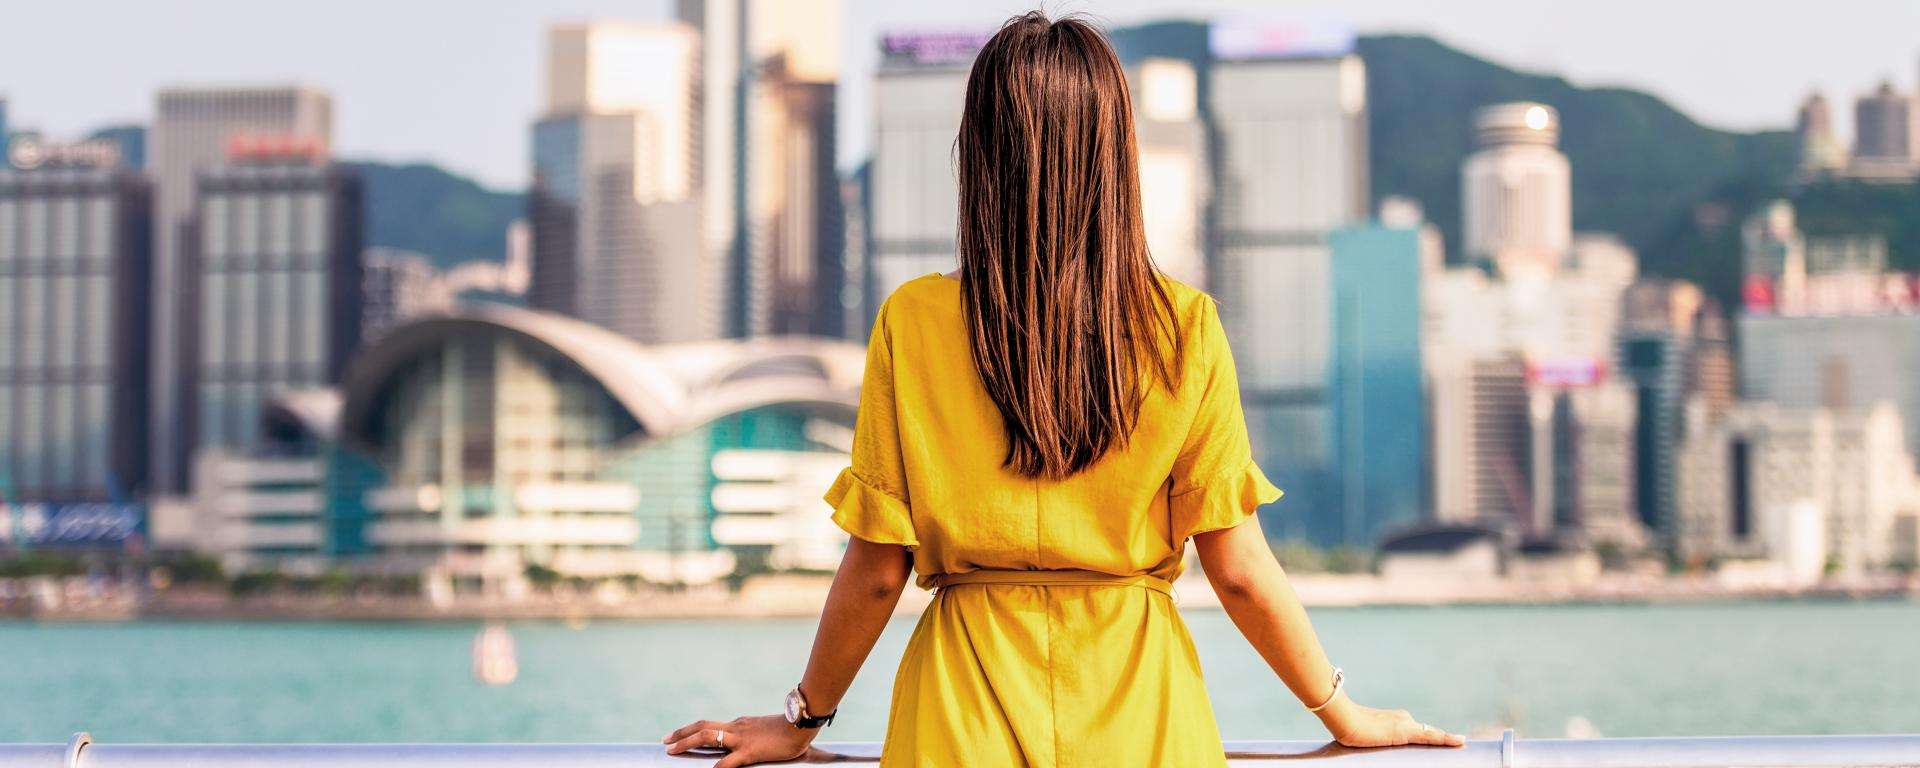 Woman looking out over a city